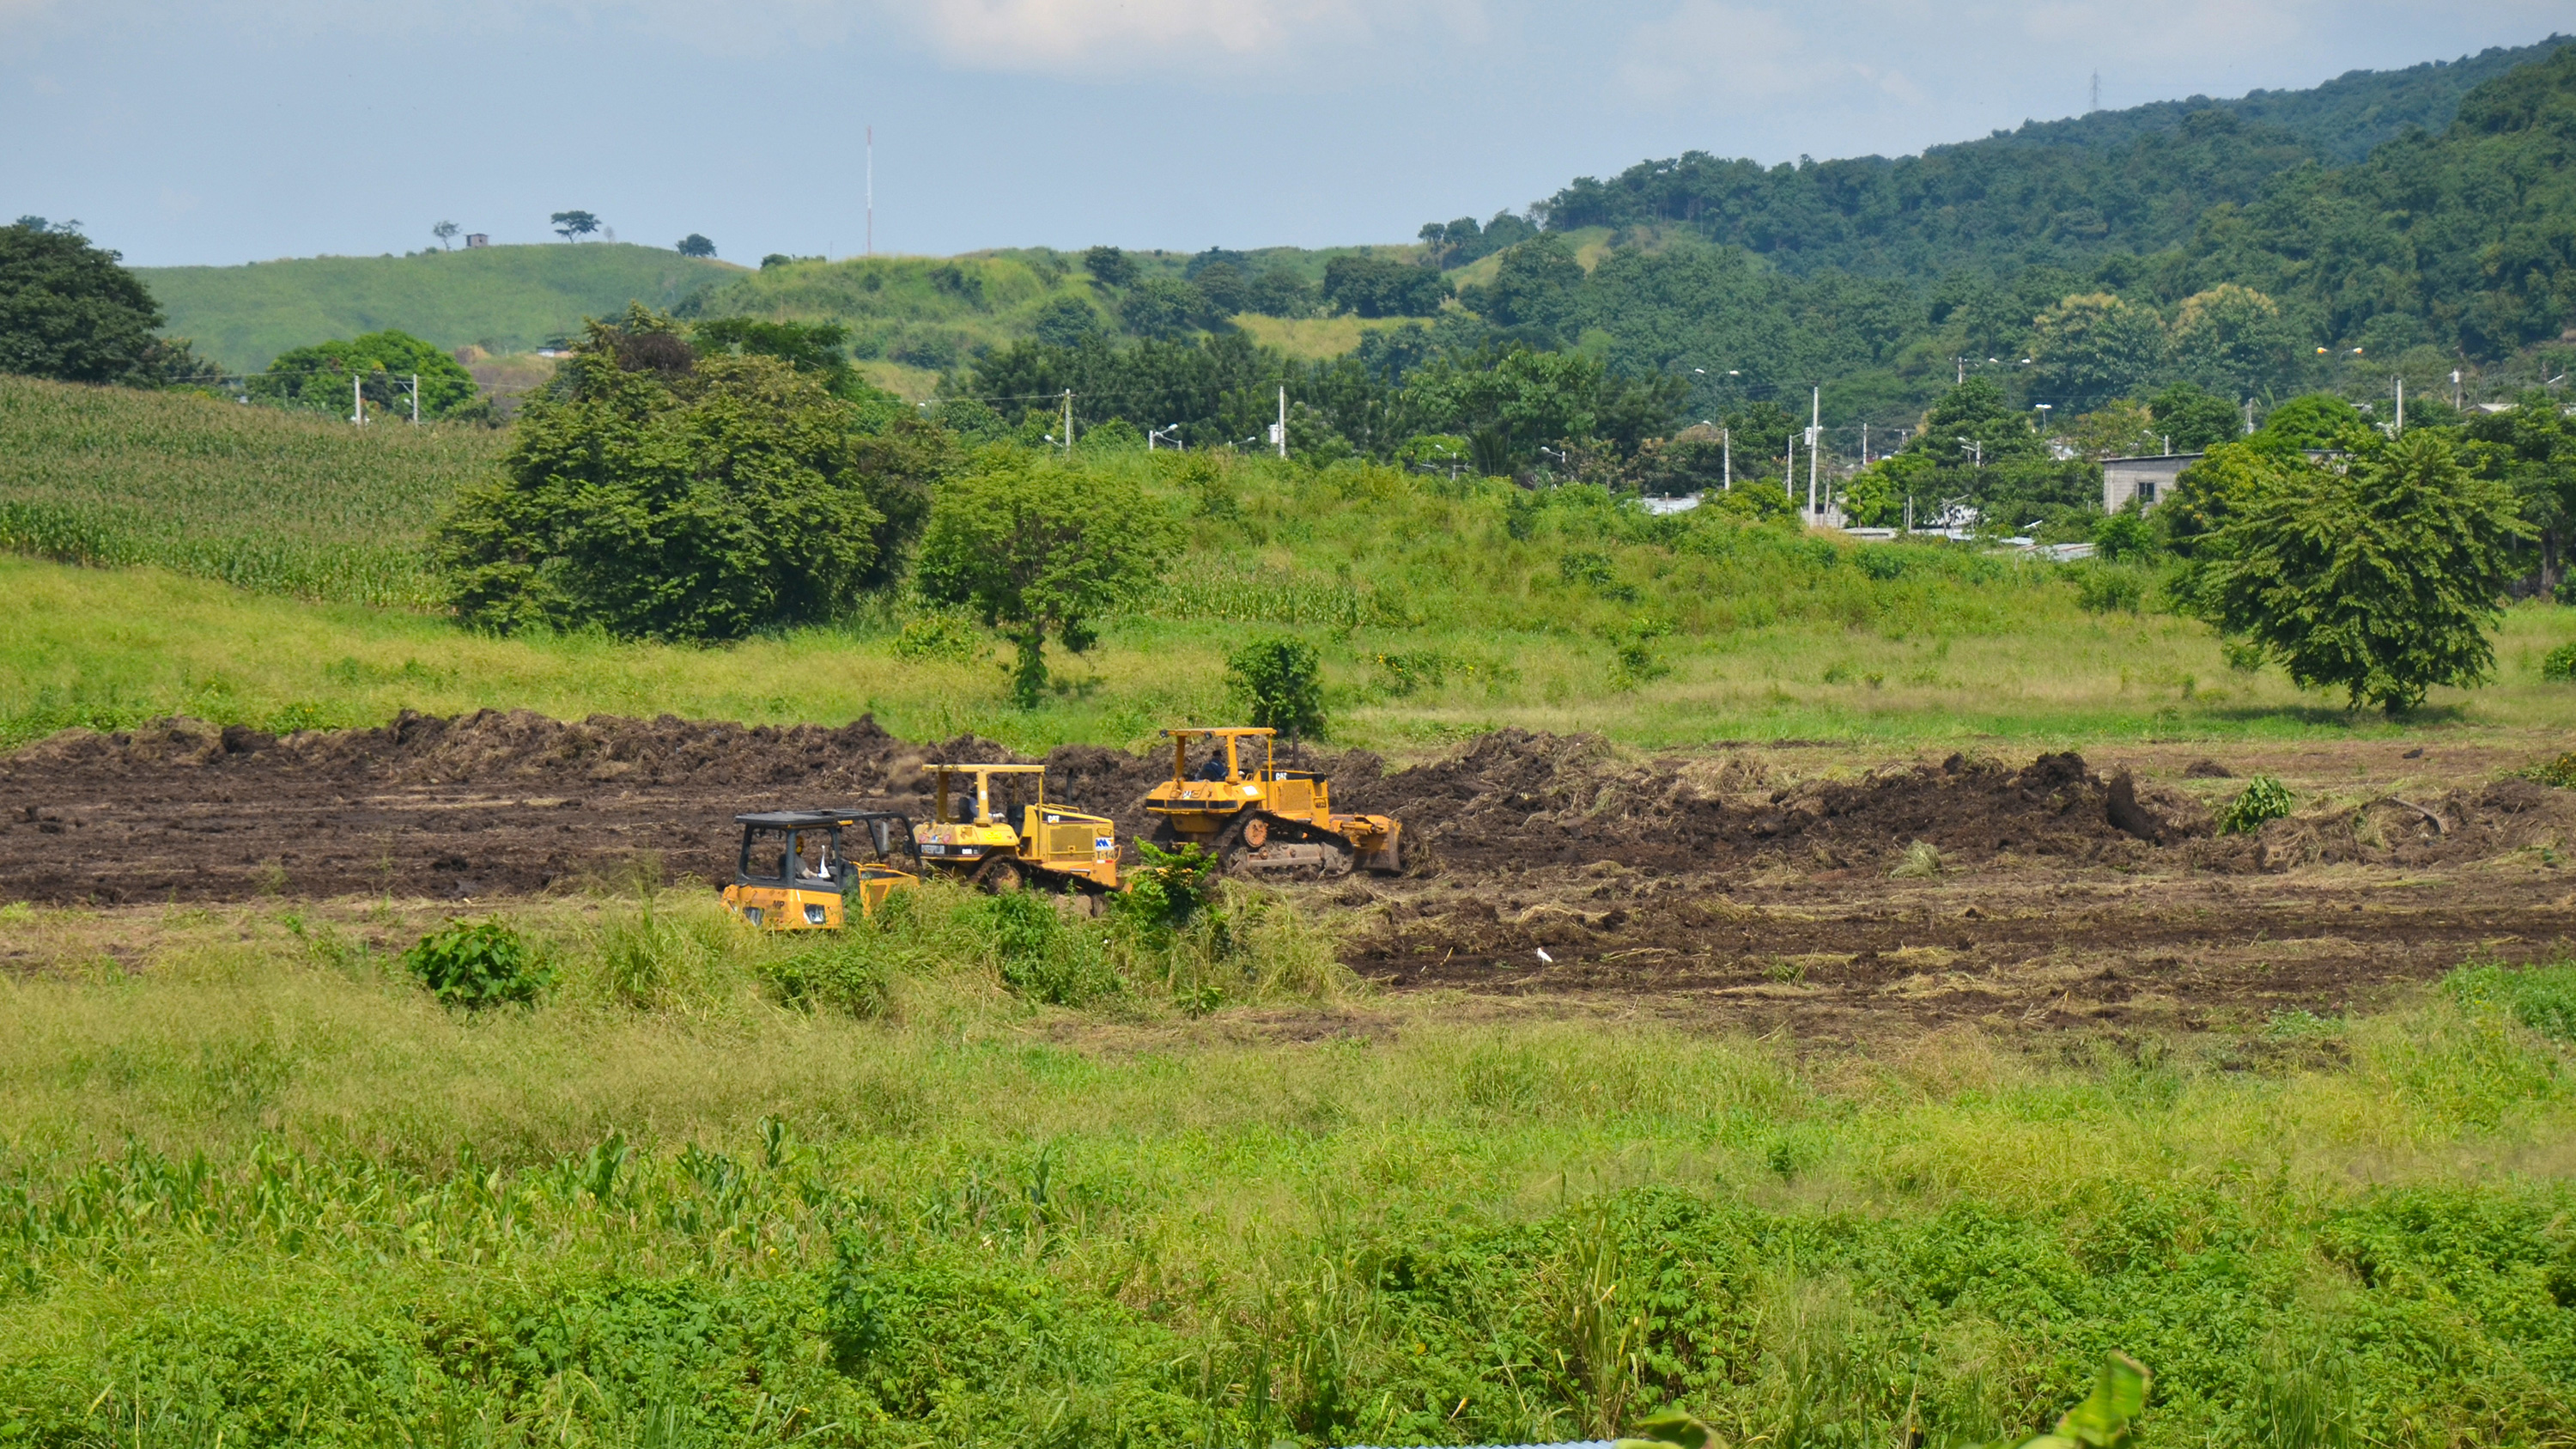 Picture shows a lush green landscape with some heavy machines clearing the ground.